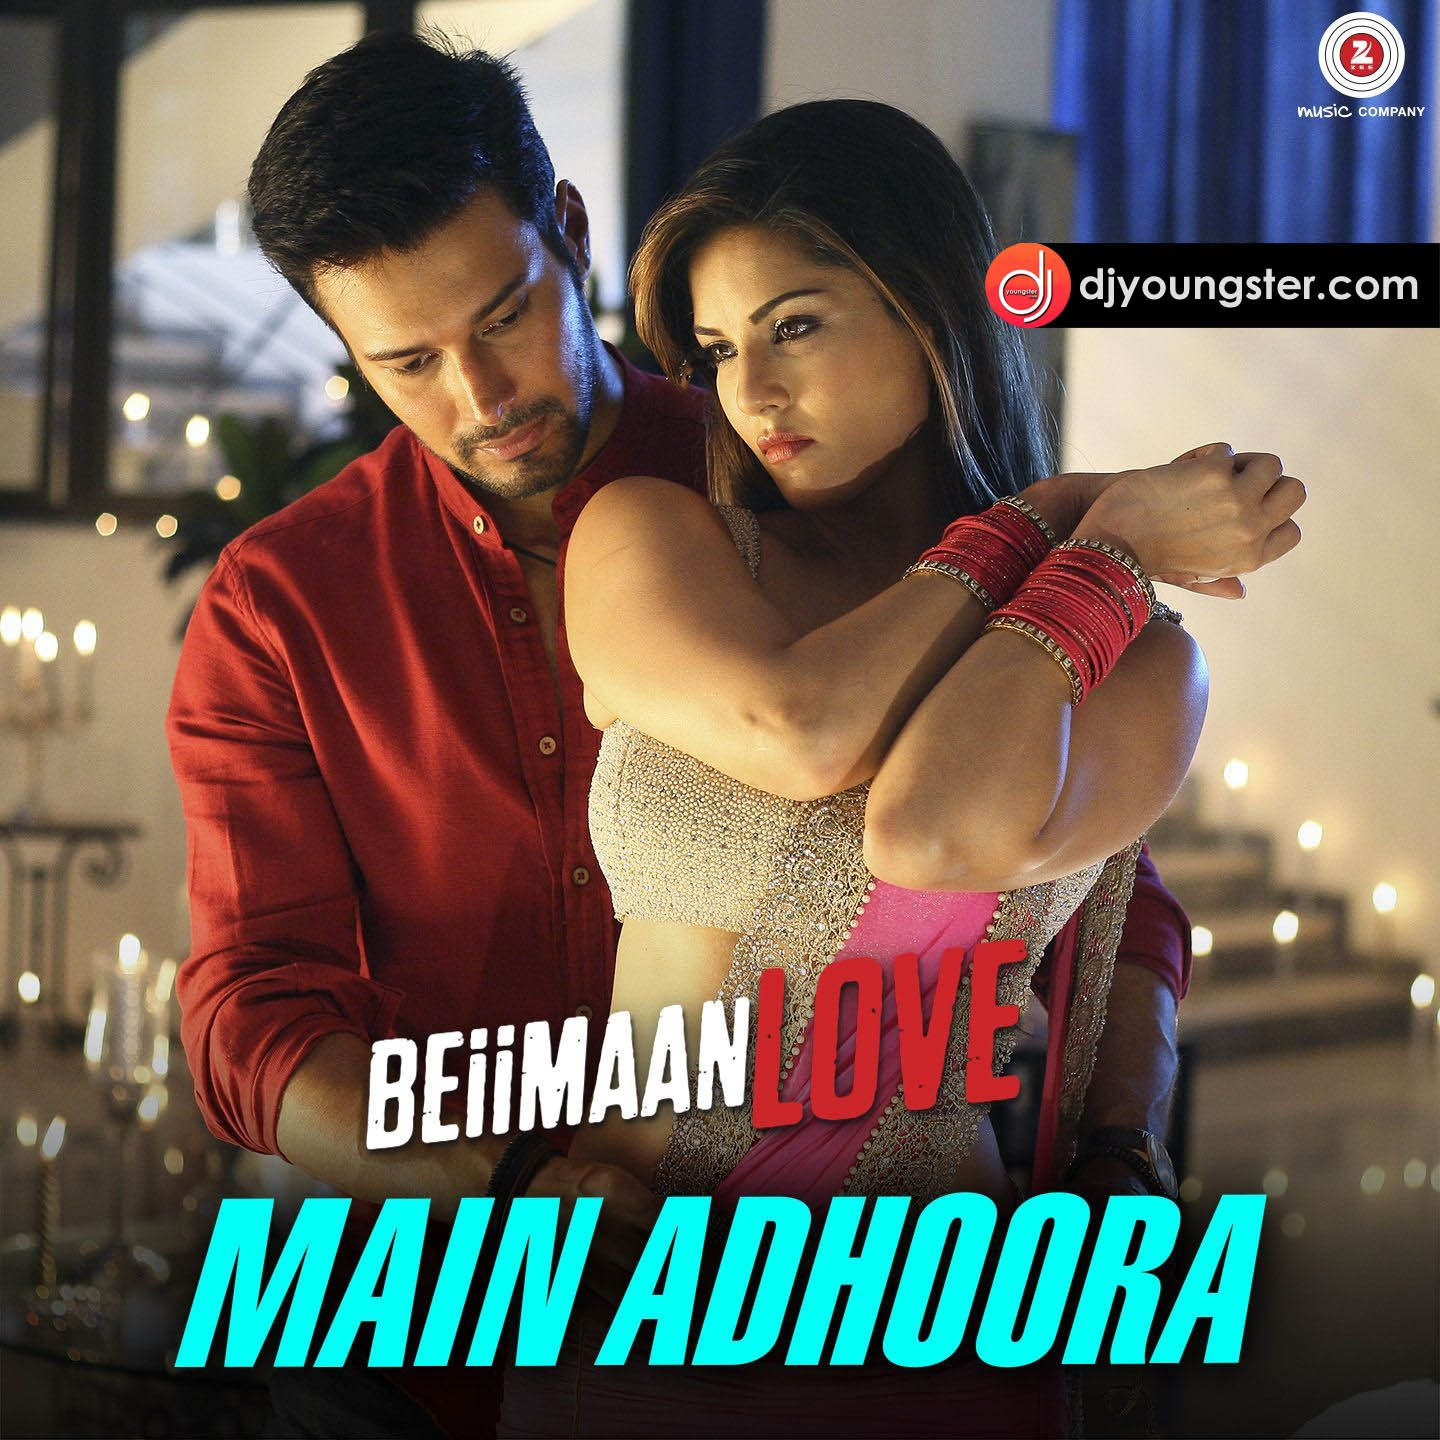 Main Adhoora Aakansha Sharma Mp3 Download Djyoungster Com Mp3 Song Latest Movie Songs Songs